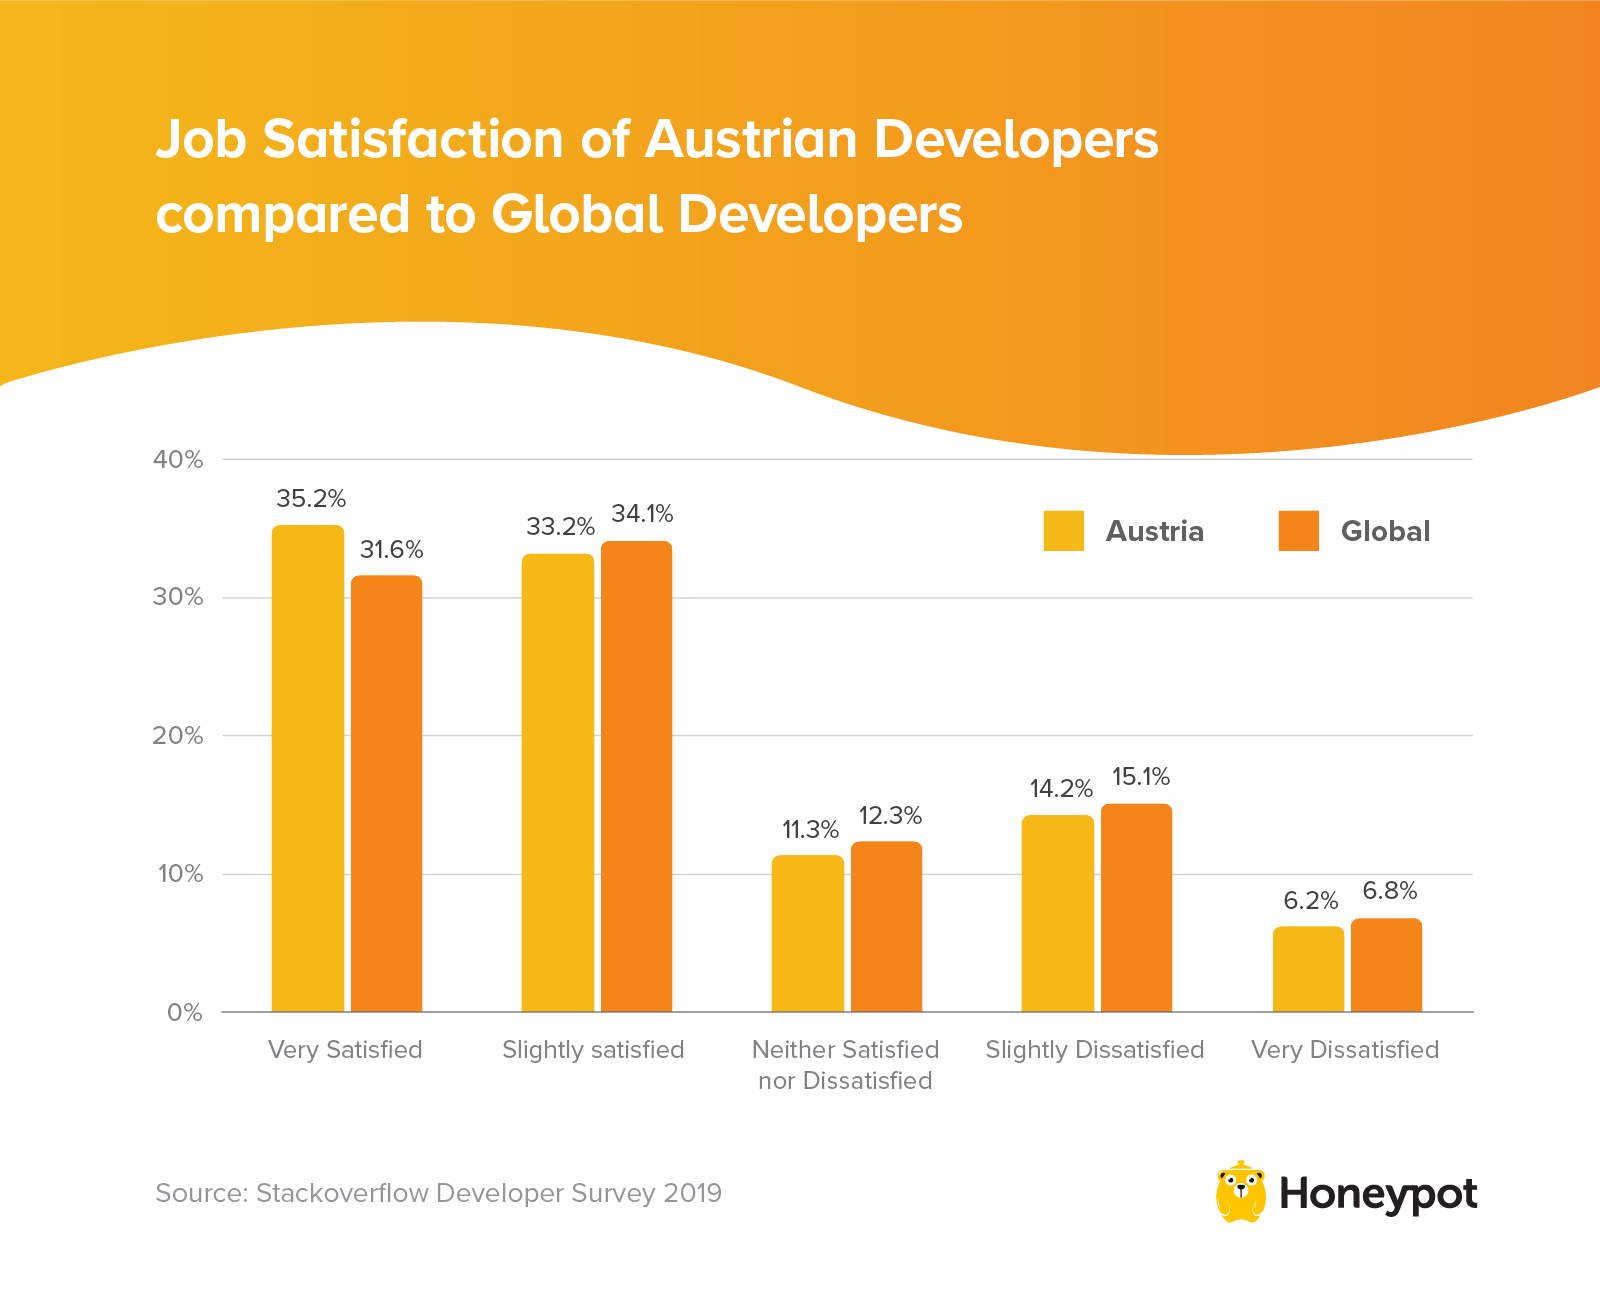 Job satisfaction of Austrian developers compared to global developers